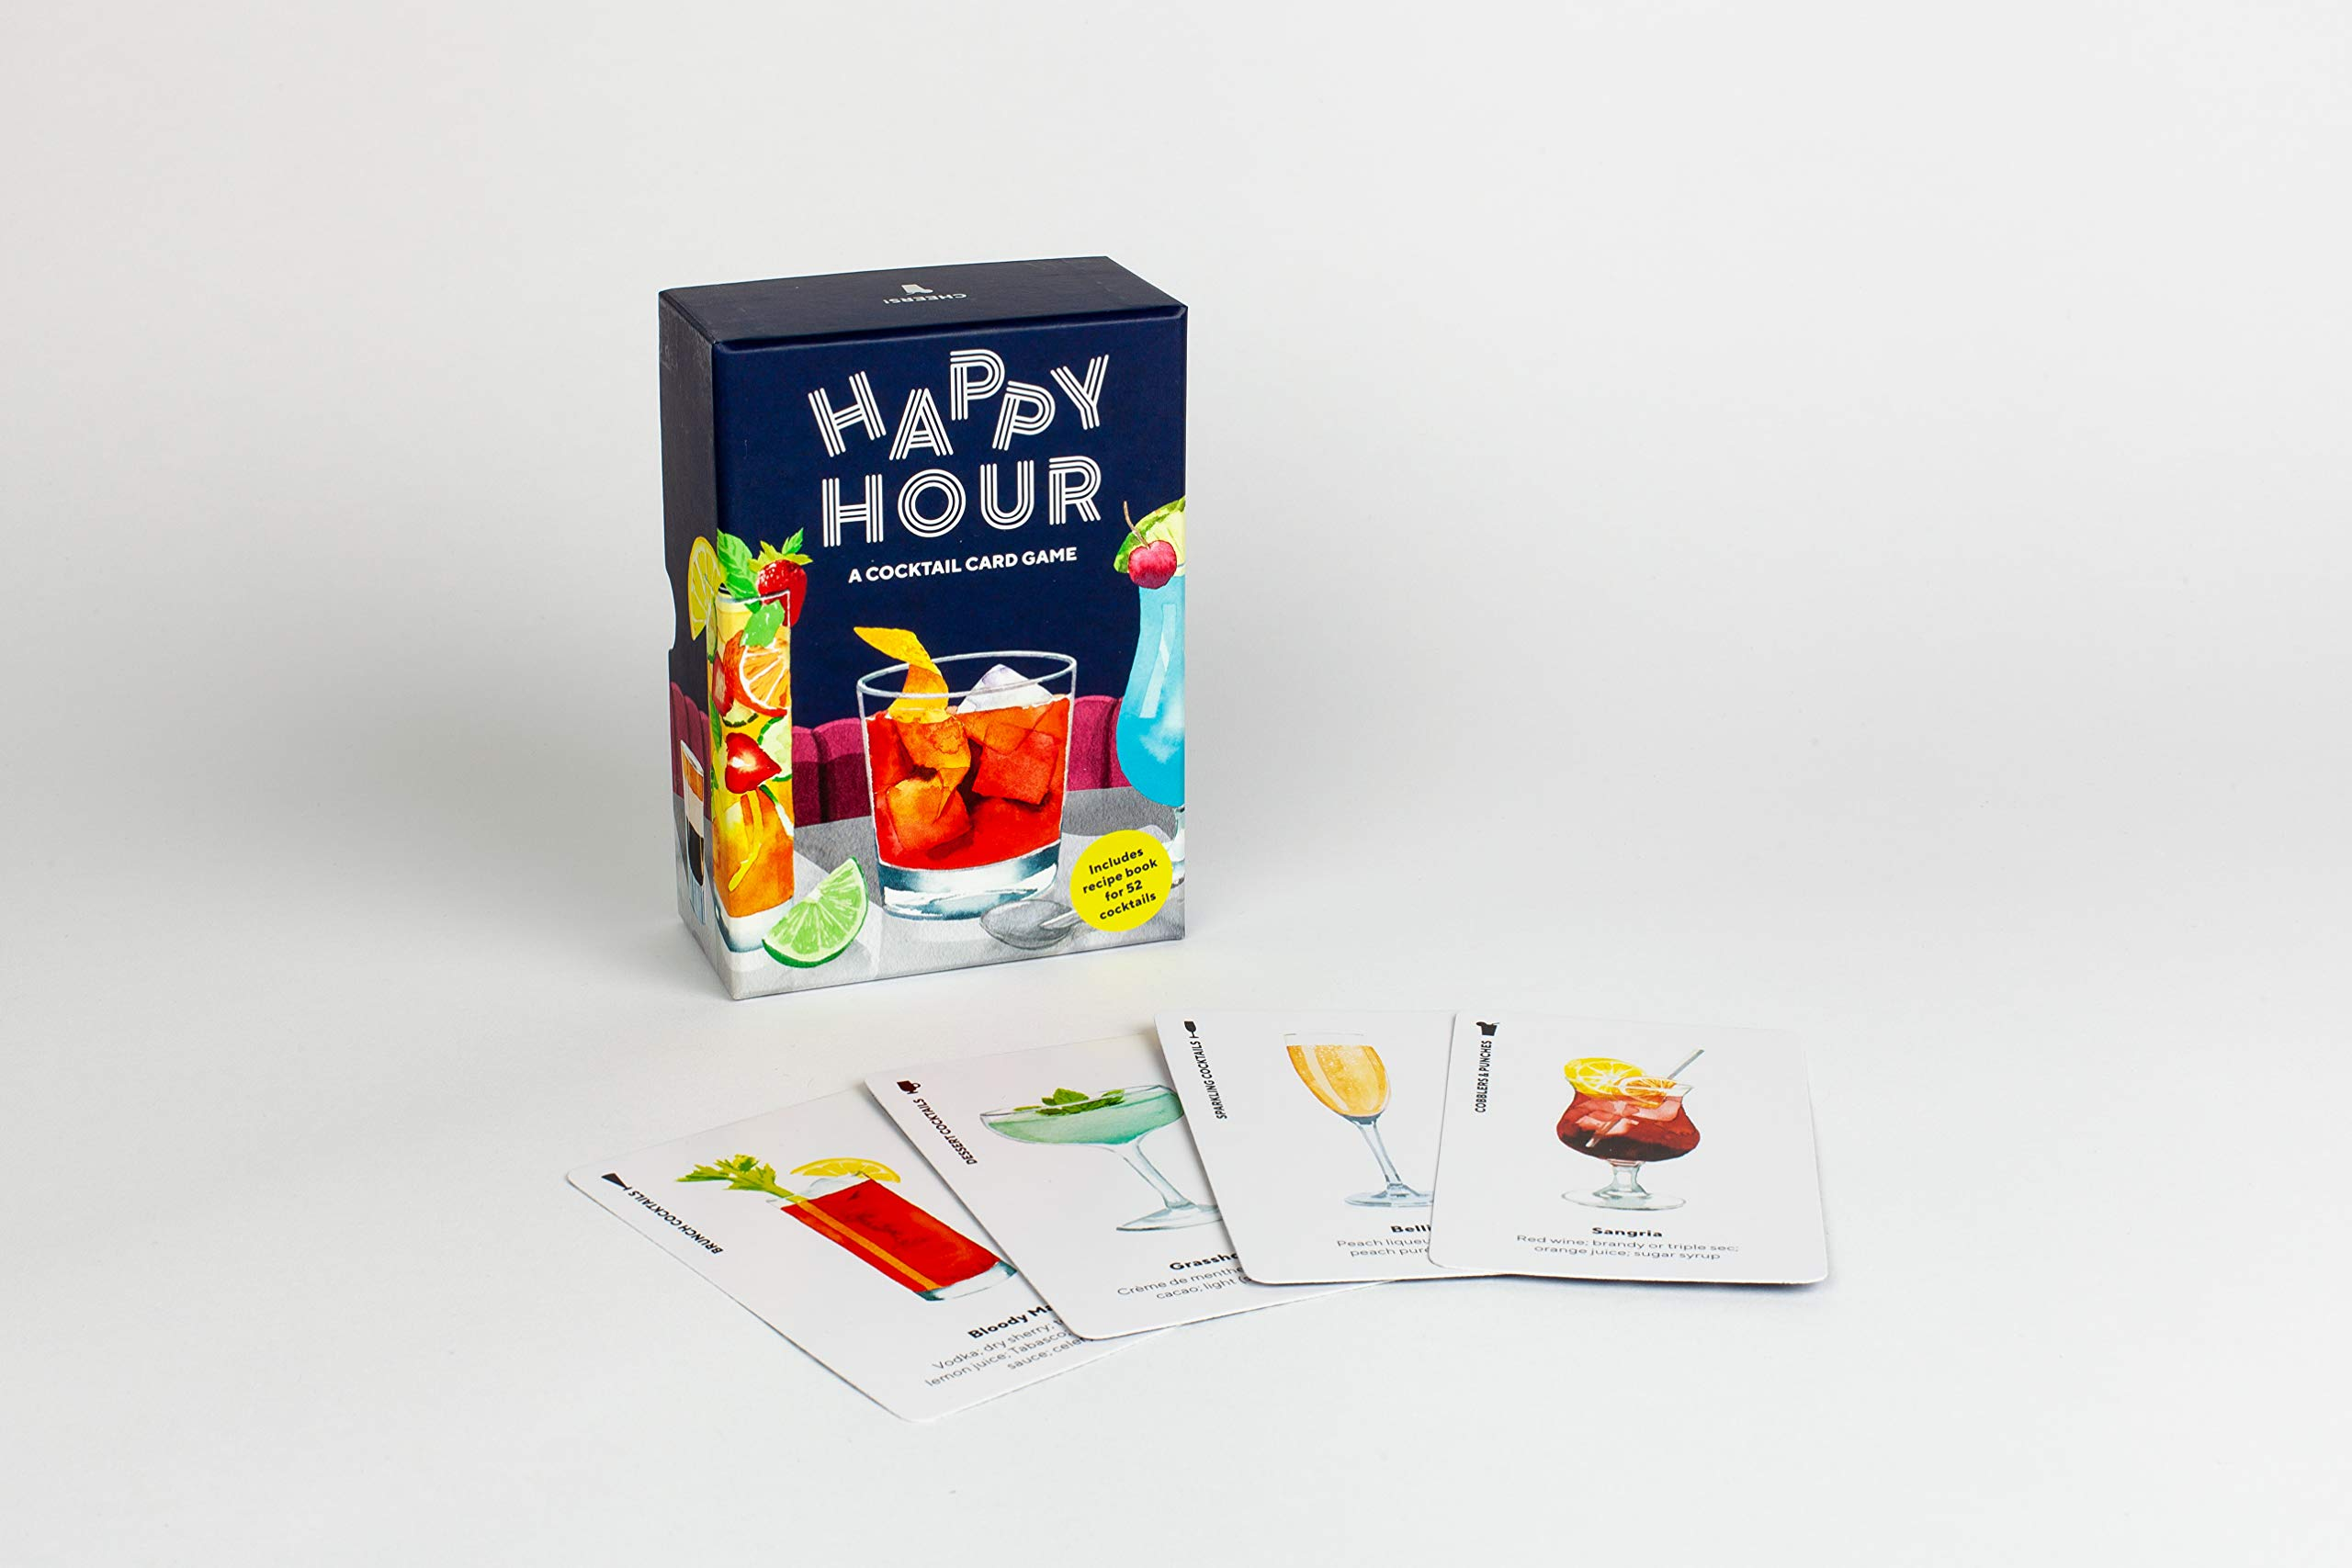 Happy Hour: A Cocktail Card Game: Amazon.co.uk: Gladwin, Laura, George,  Marcel: 9781786274298: Books